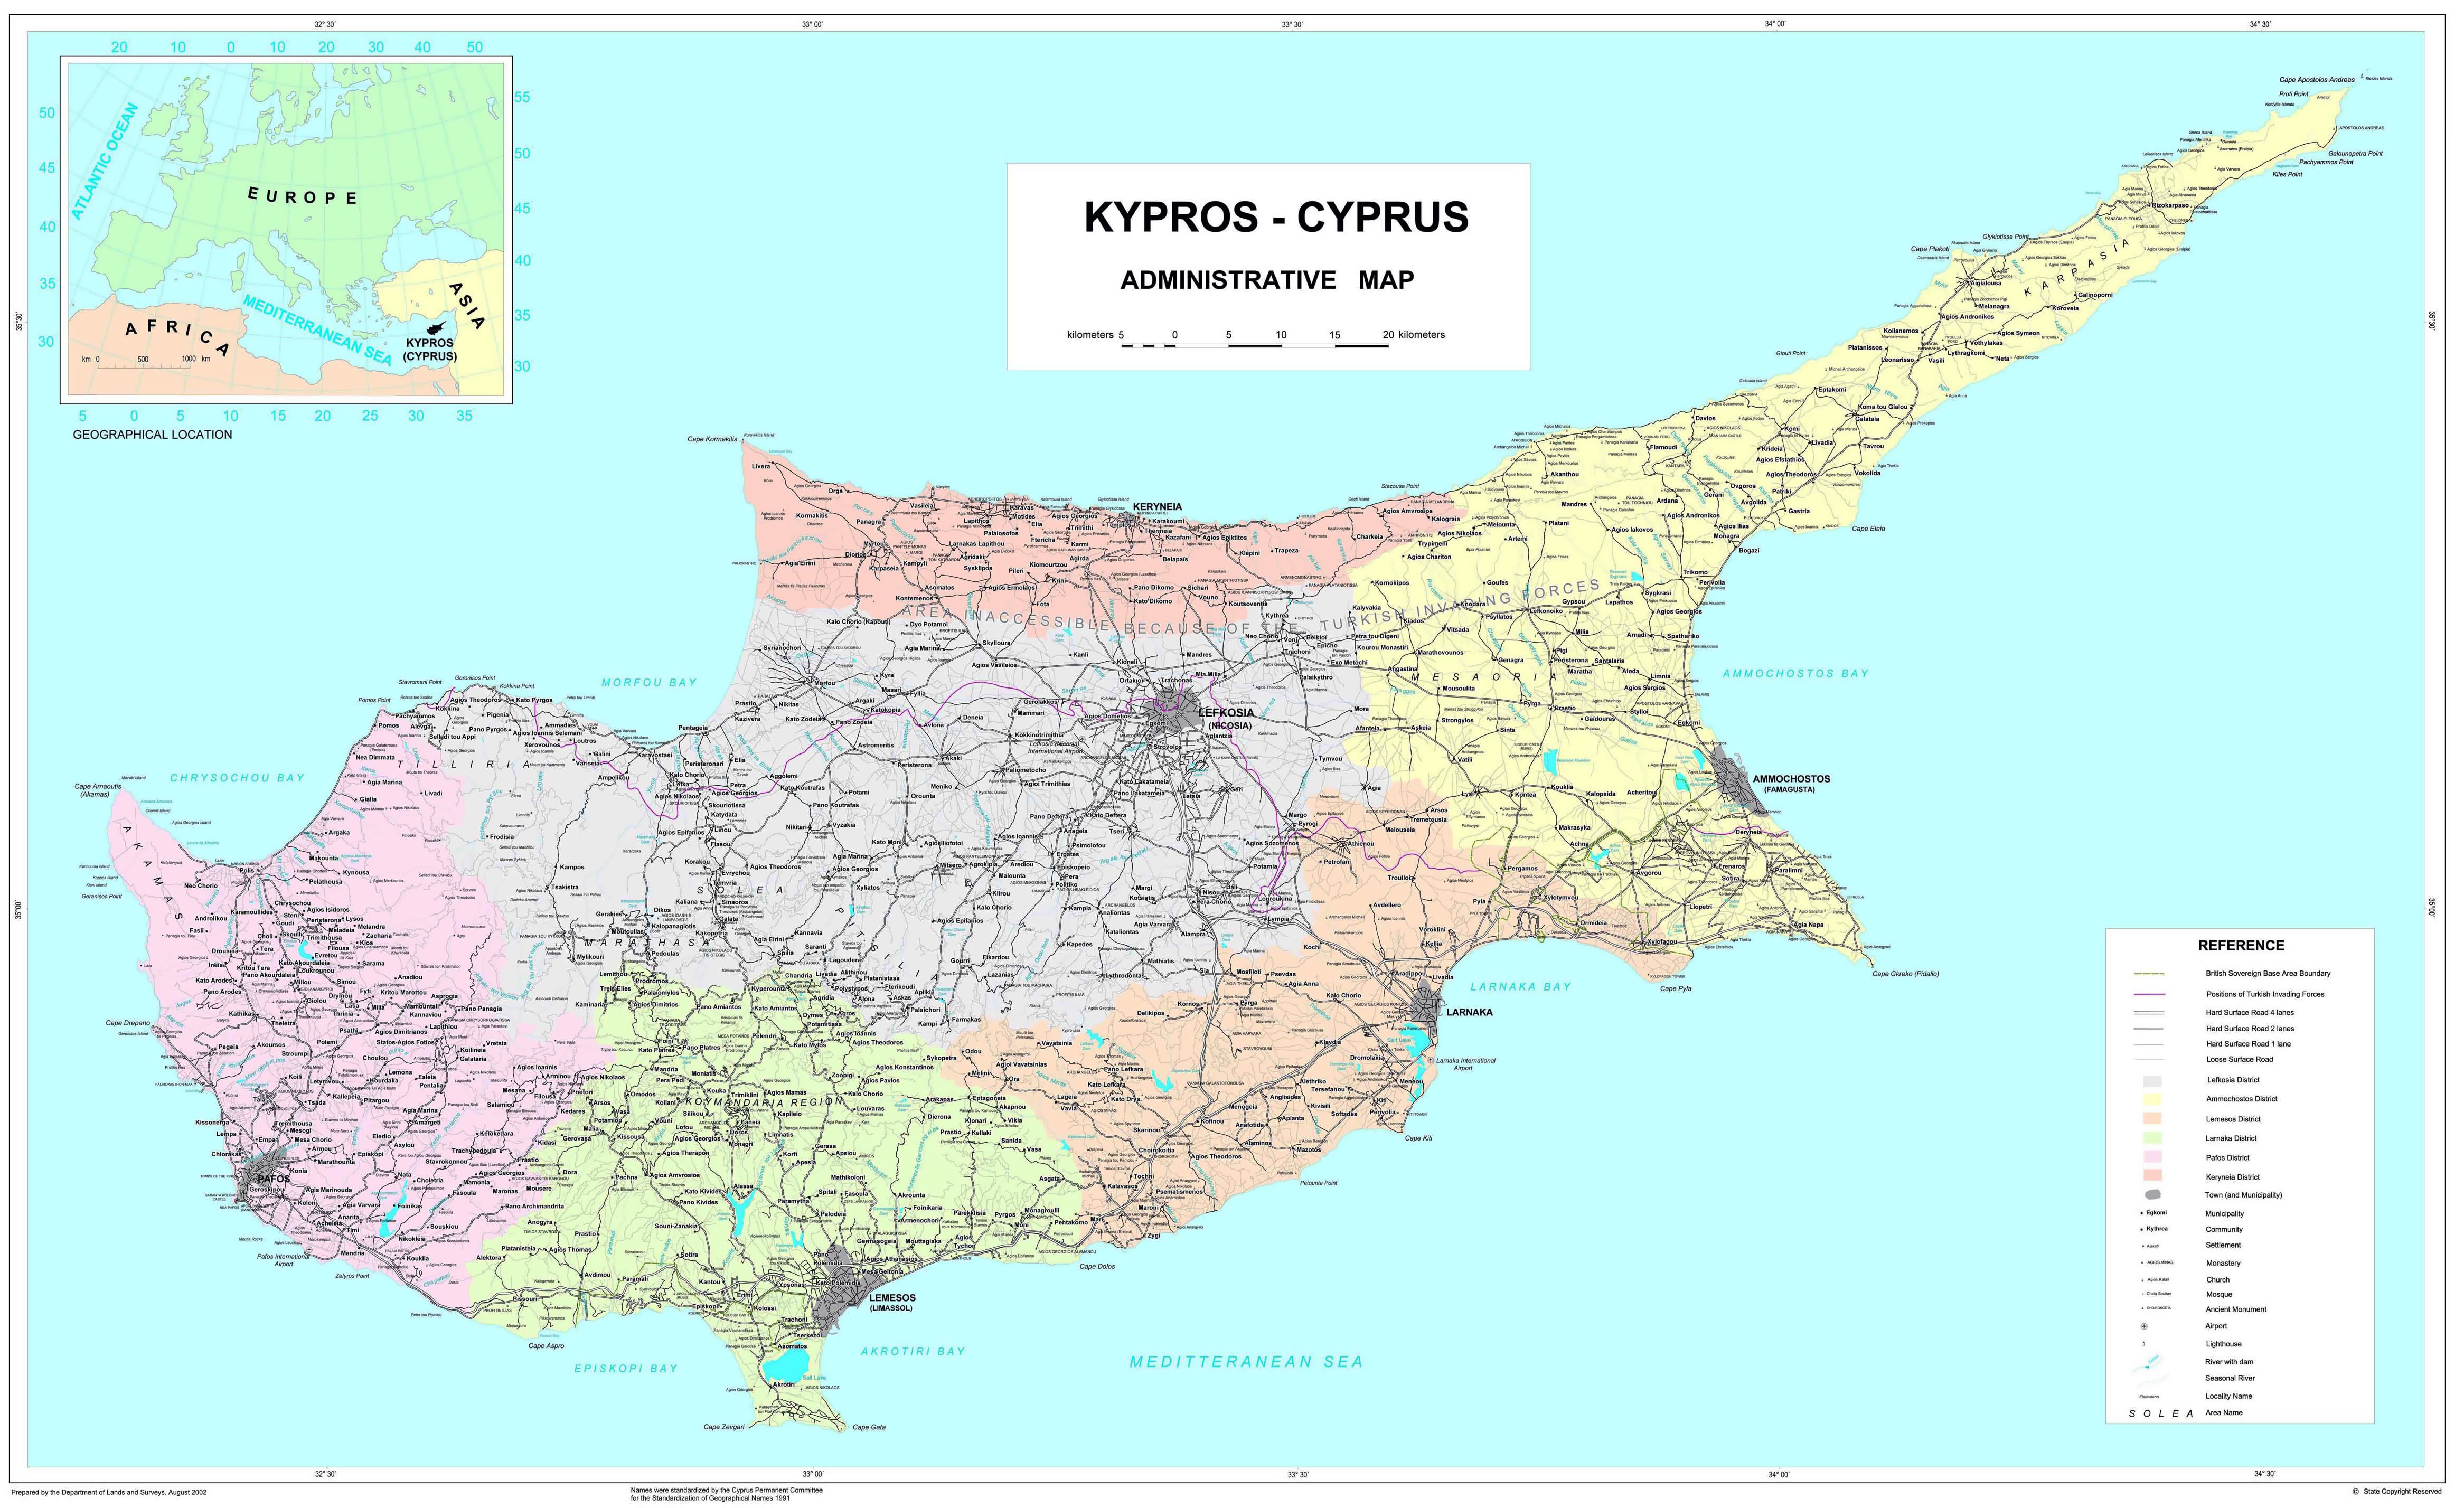 Maps of cyprus detailed map of cyprus in english tourist map of large scale administrative divisions map of cyprus with roads and cities gumiabroncs Choice Image